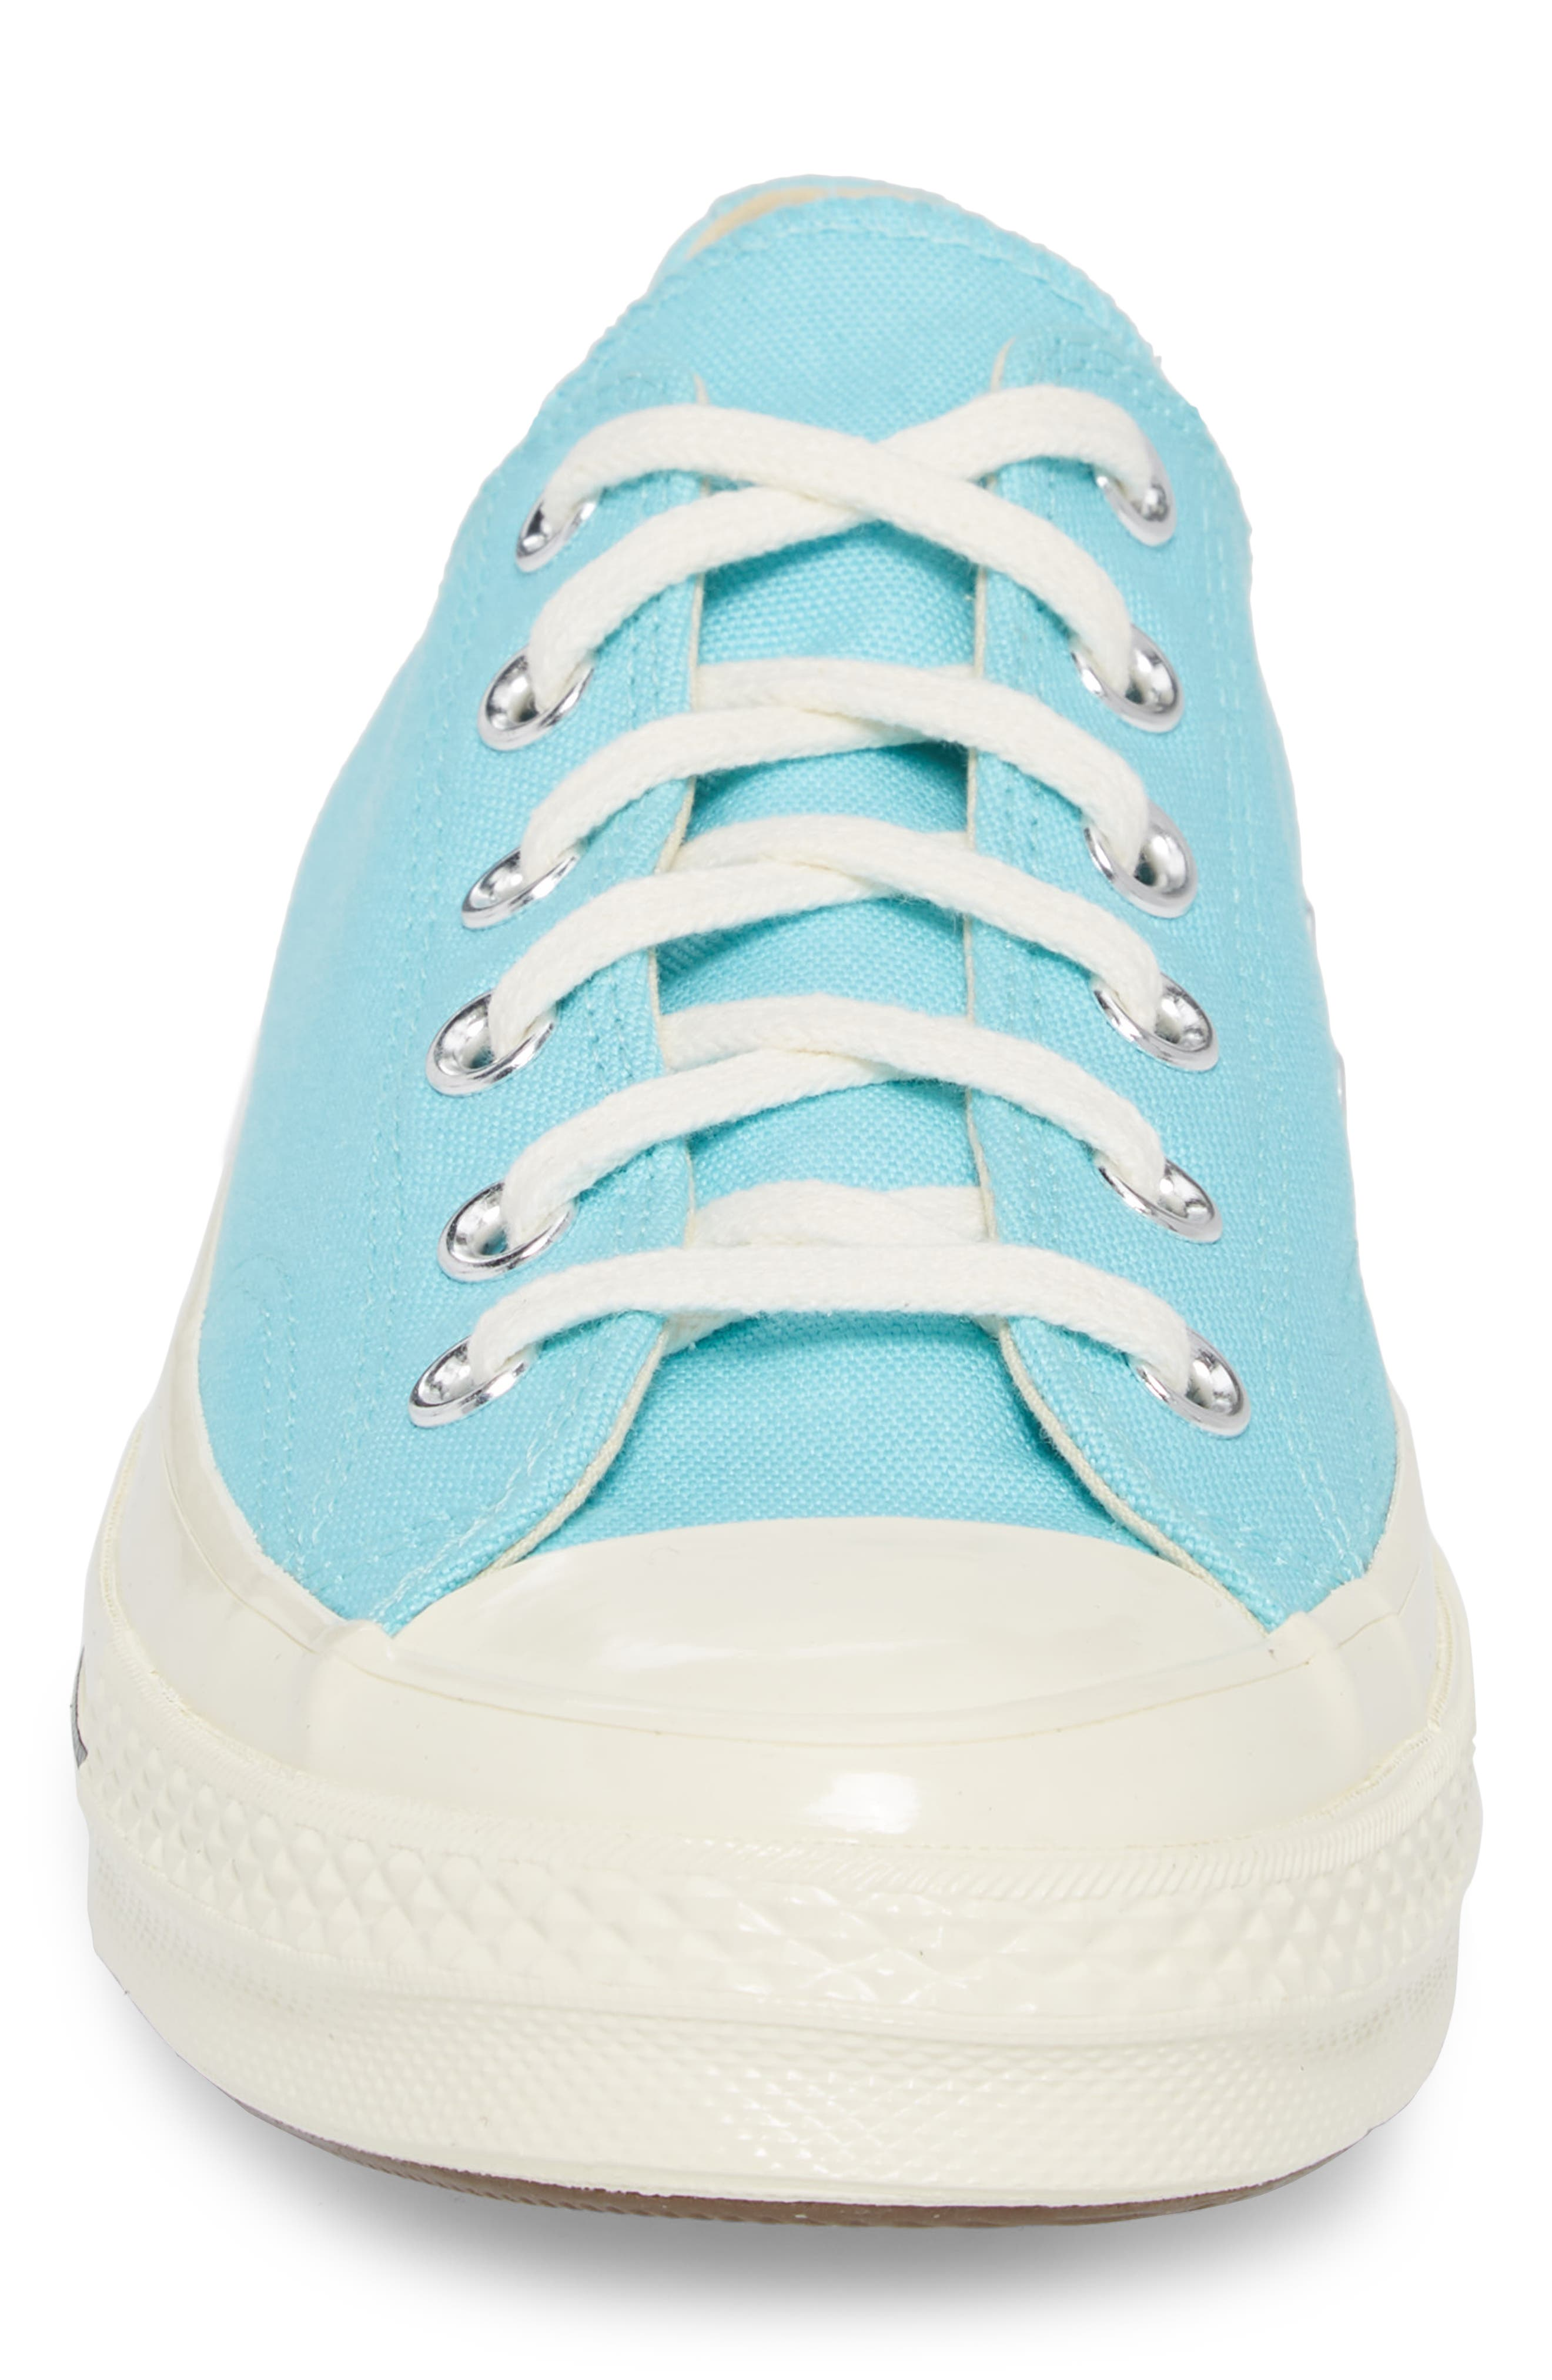 Chuck Taylor<sup>®</sup> All Star<sup>®</sup> 70 Brights Low Top Sneaker,                             Alternate thumbnail 4, color,                             486